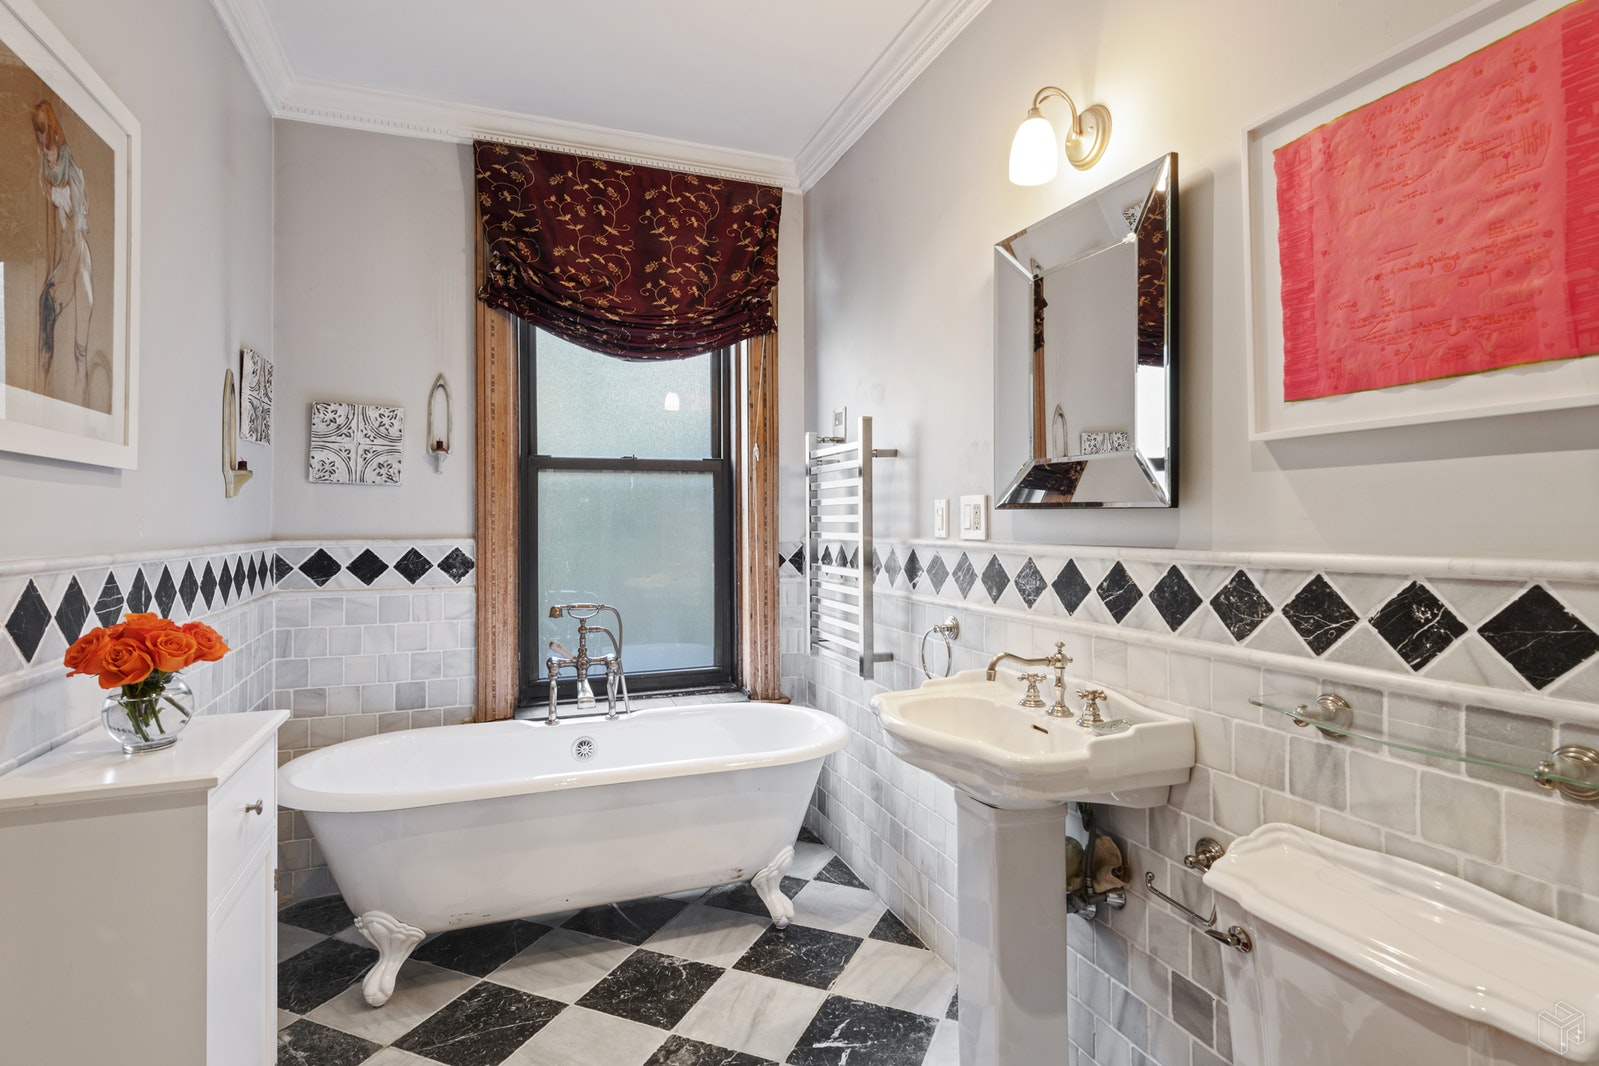 Illustrious Hamilton Heights Townhouse, Upper Manhattan, NYC, 10032, $2,795,000, Property For Sale, Halstead Real Estate, Photo 7